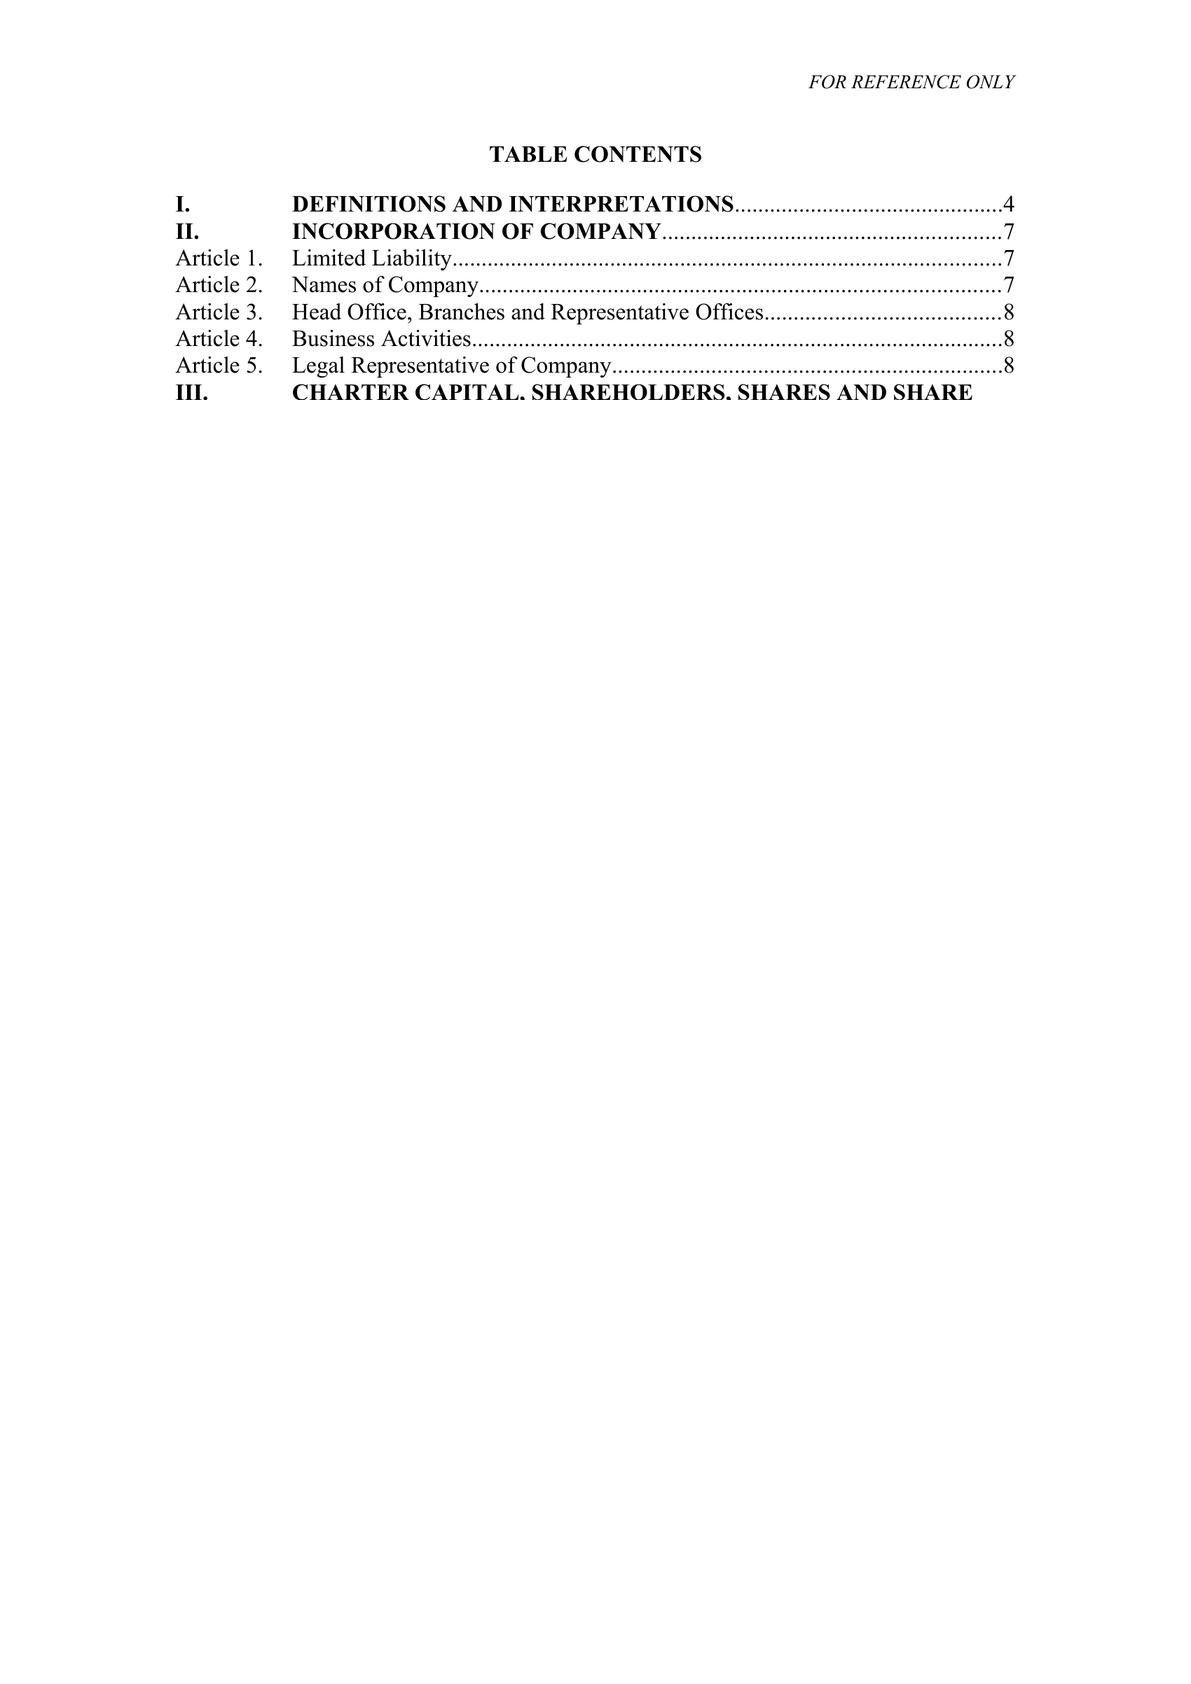 Joint stock company charter template in Vietnam (English)-1